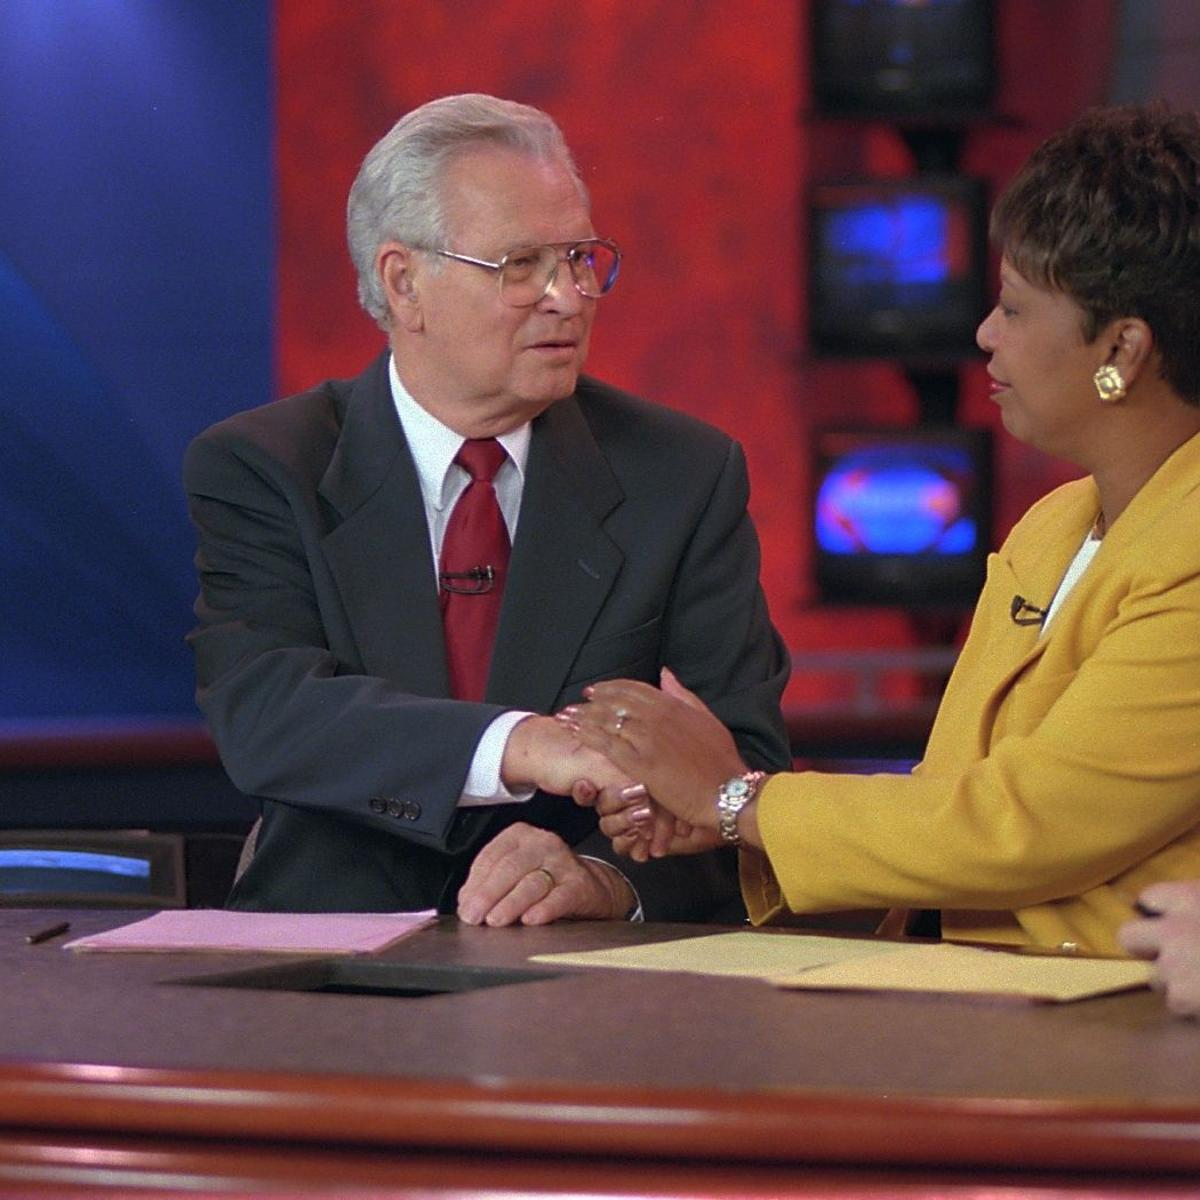 Longtime WFMY News 2 anchor Lee Kinard dies at age 86